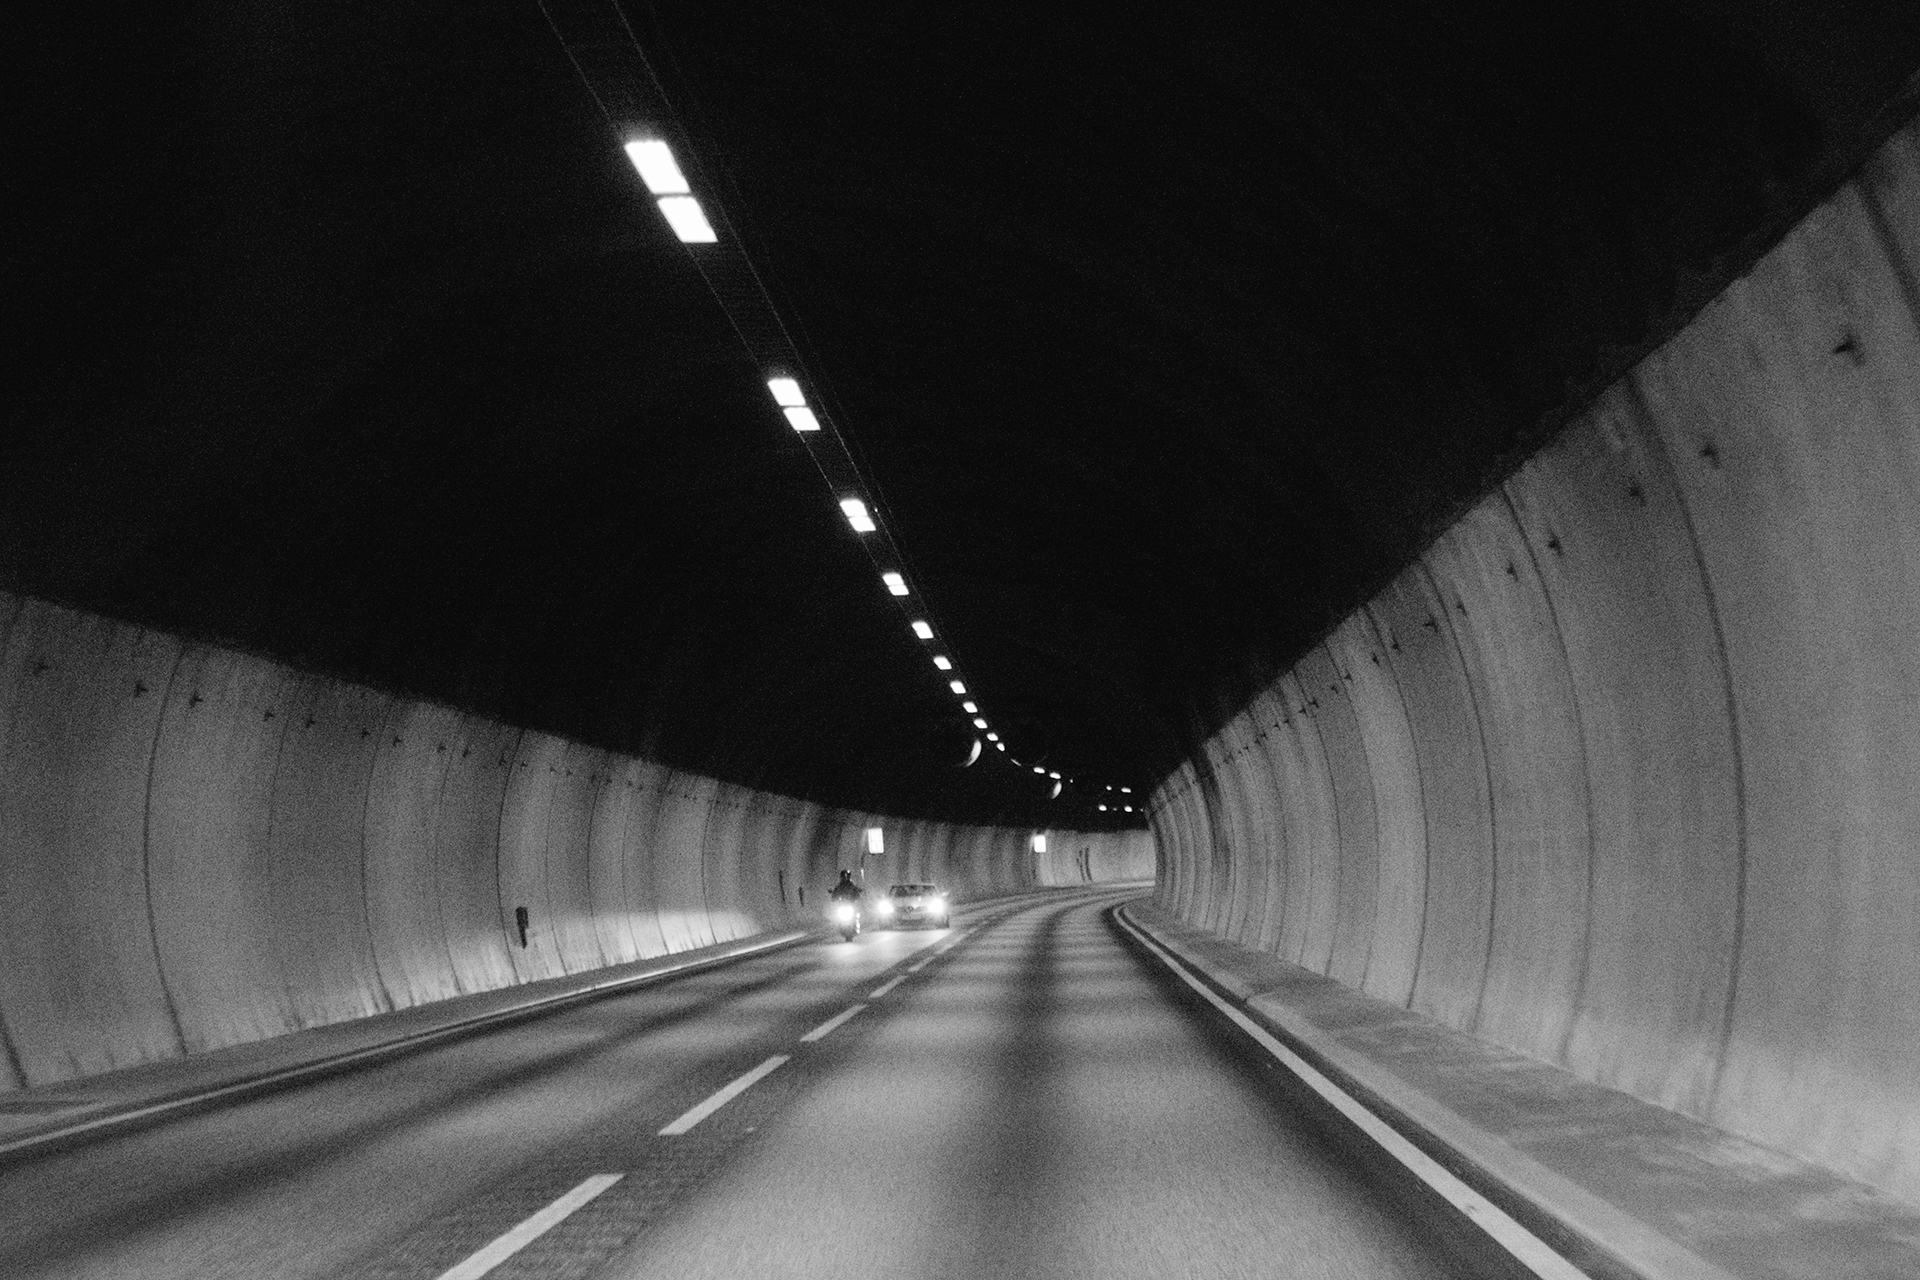 Tunel In Black And White By Jay Mantri